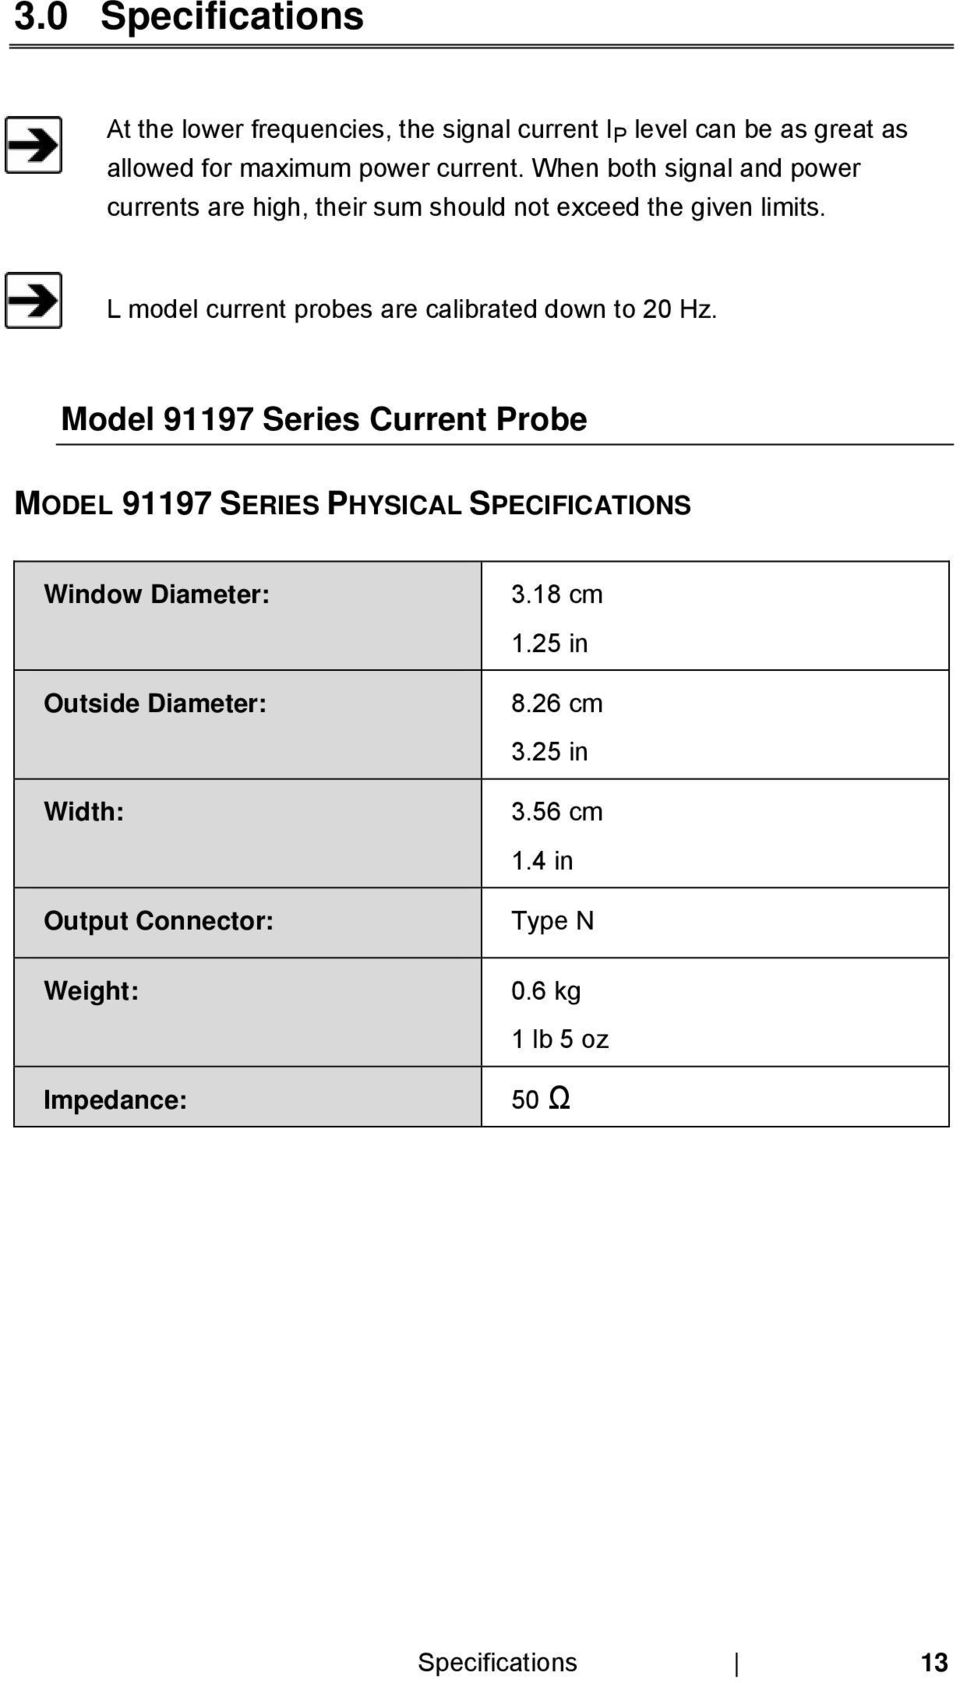 L model current probes are calibrated down to 20 Hz.